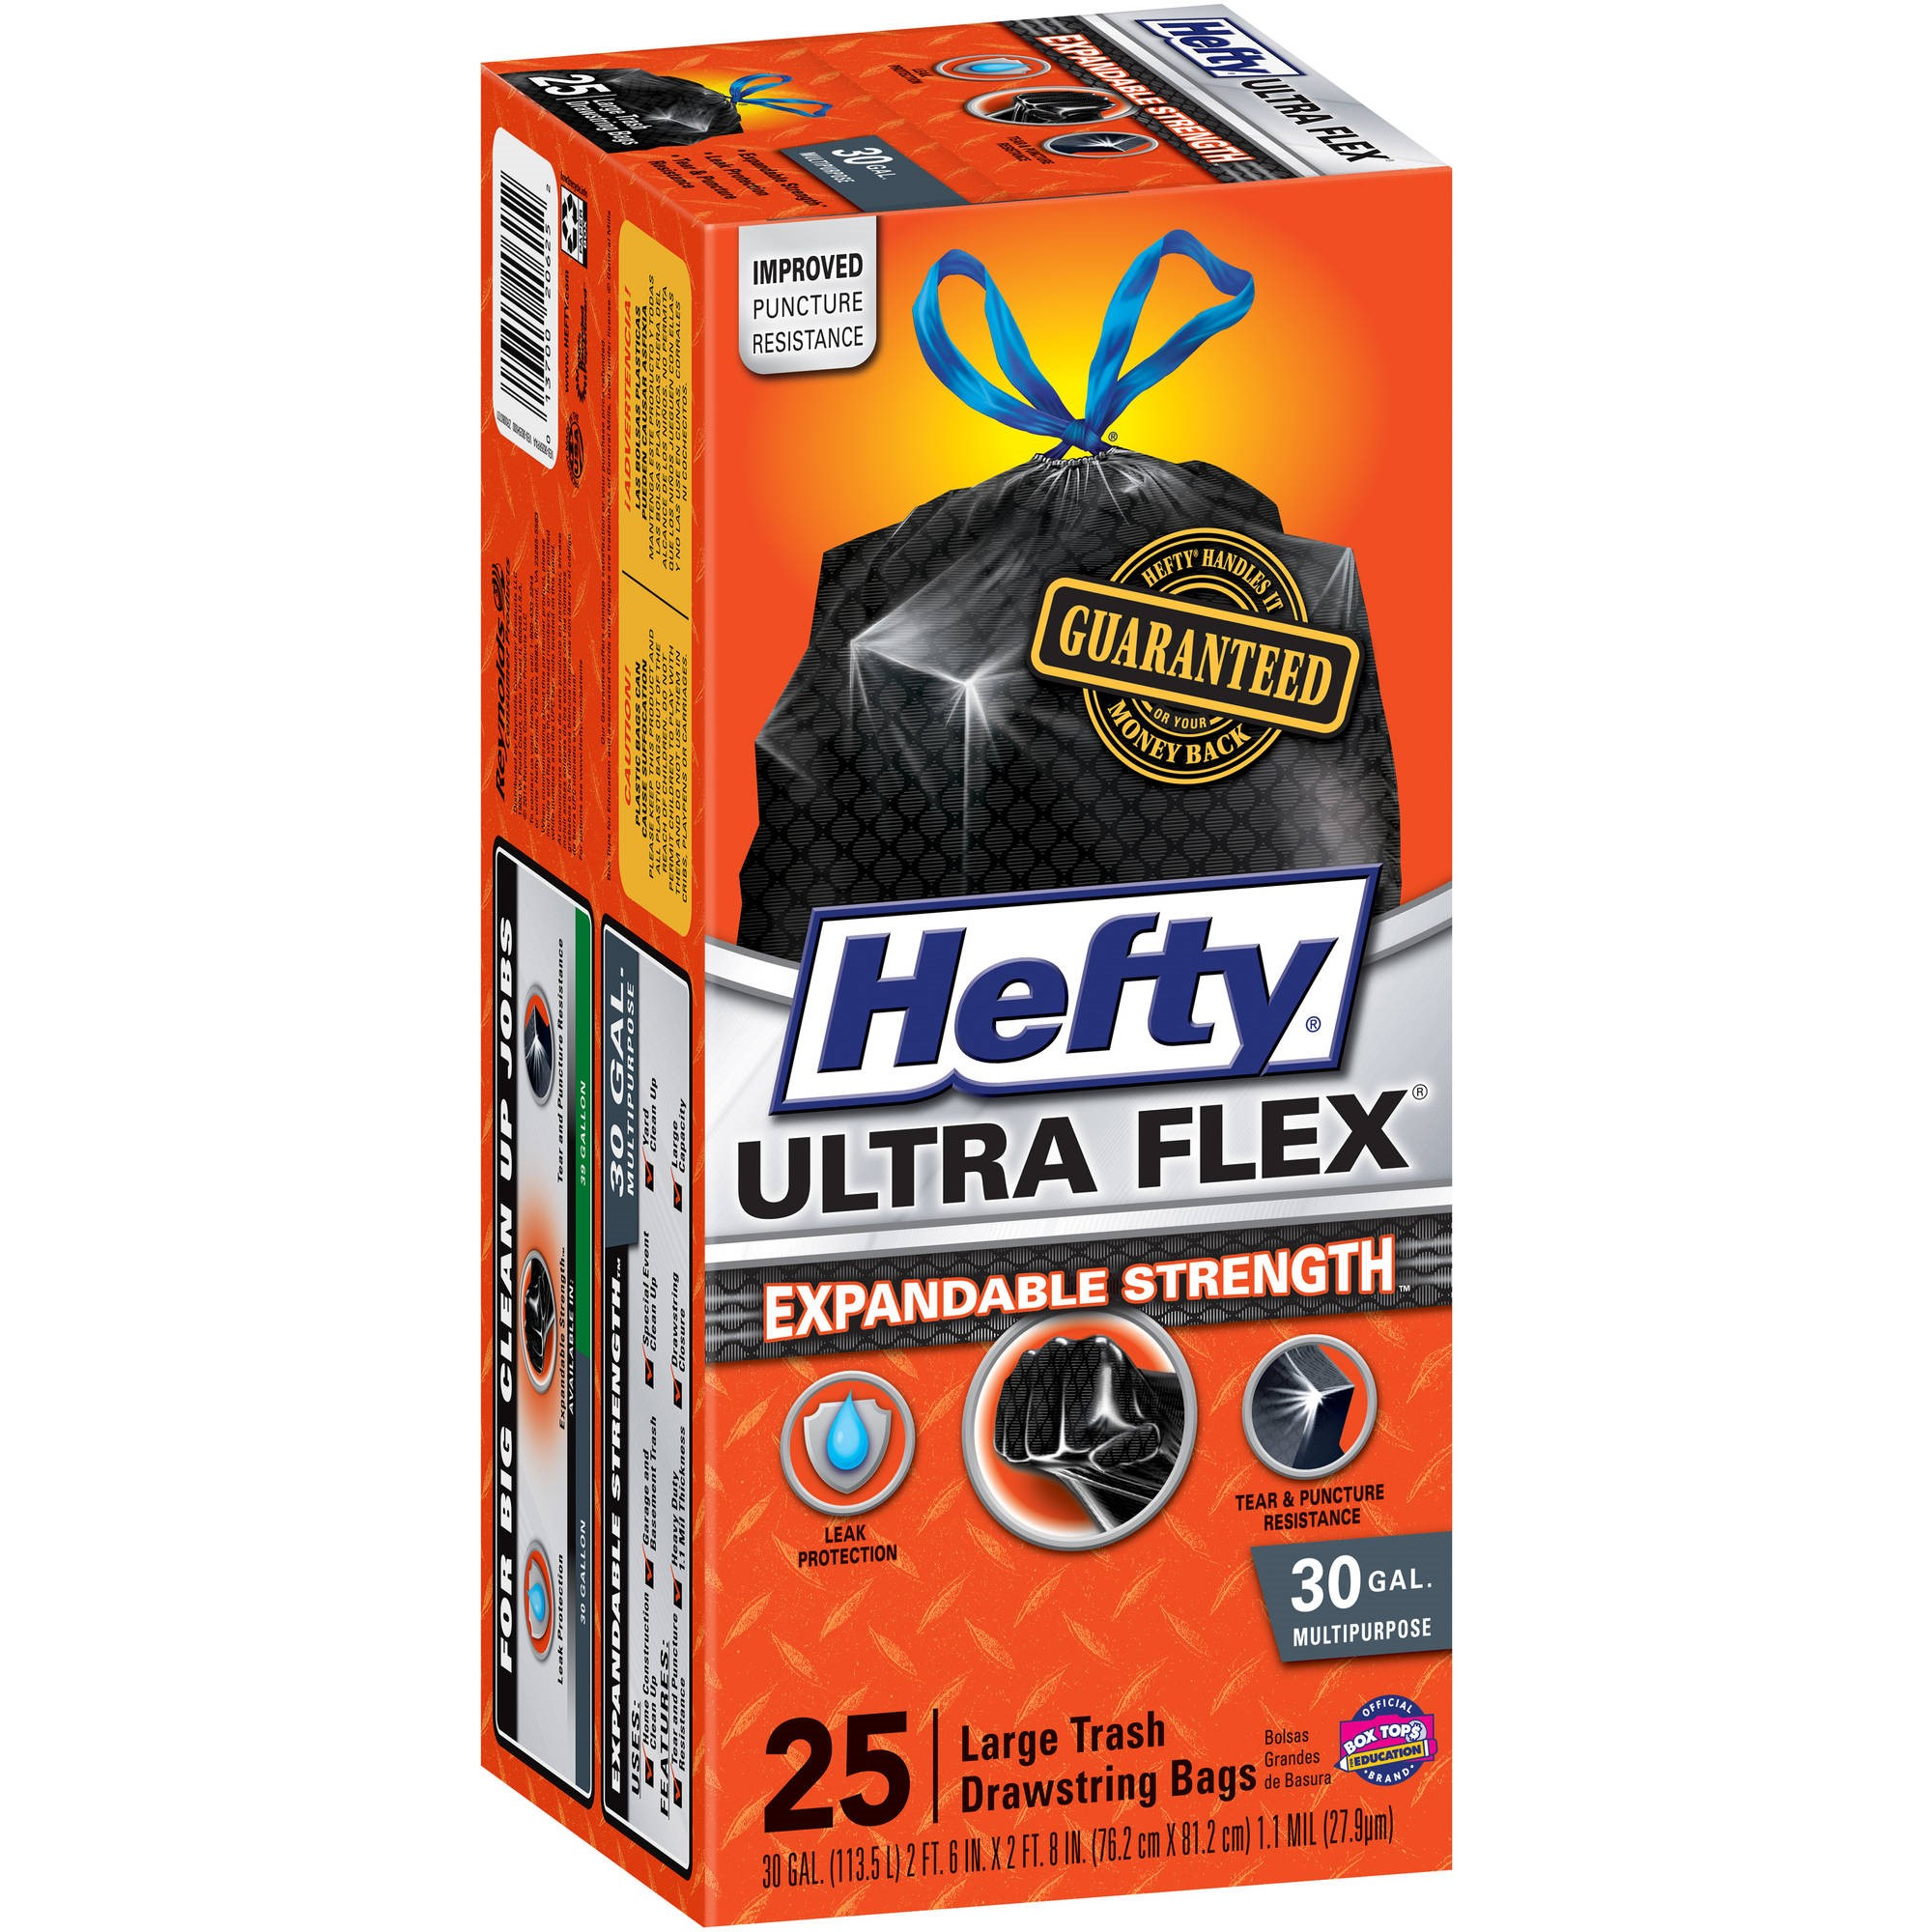 Hefty Expandable Strength Large Drawstring Trash Bags, 30 Gallon, 25 Count